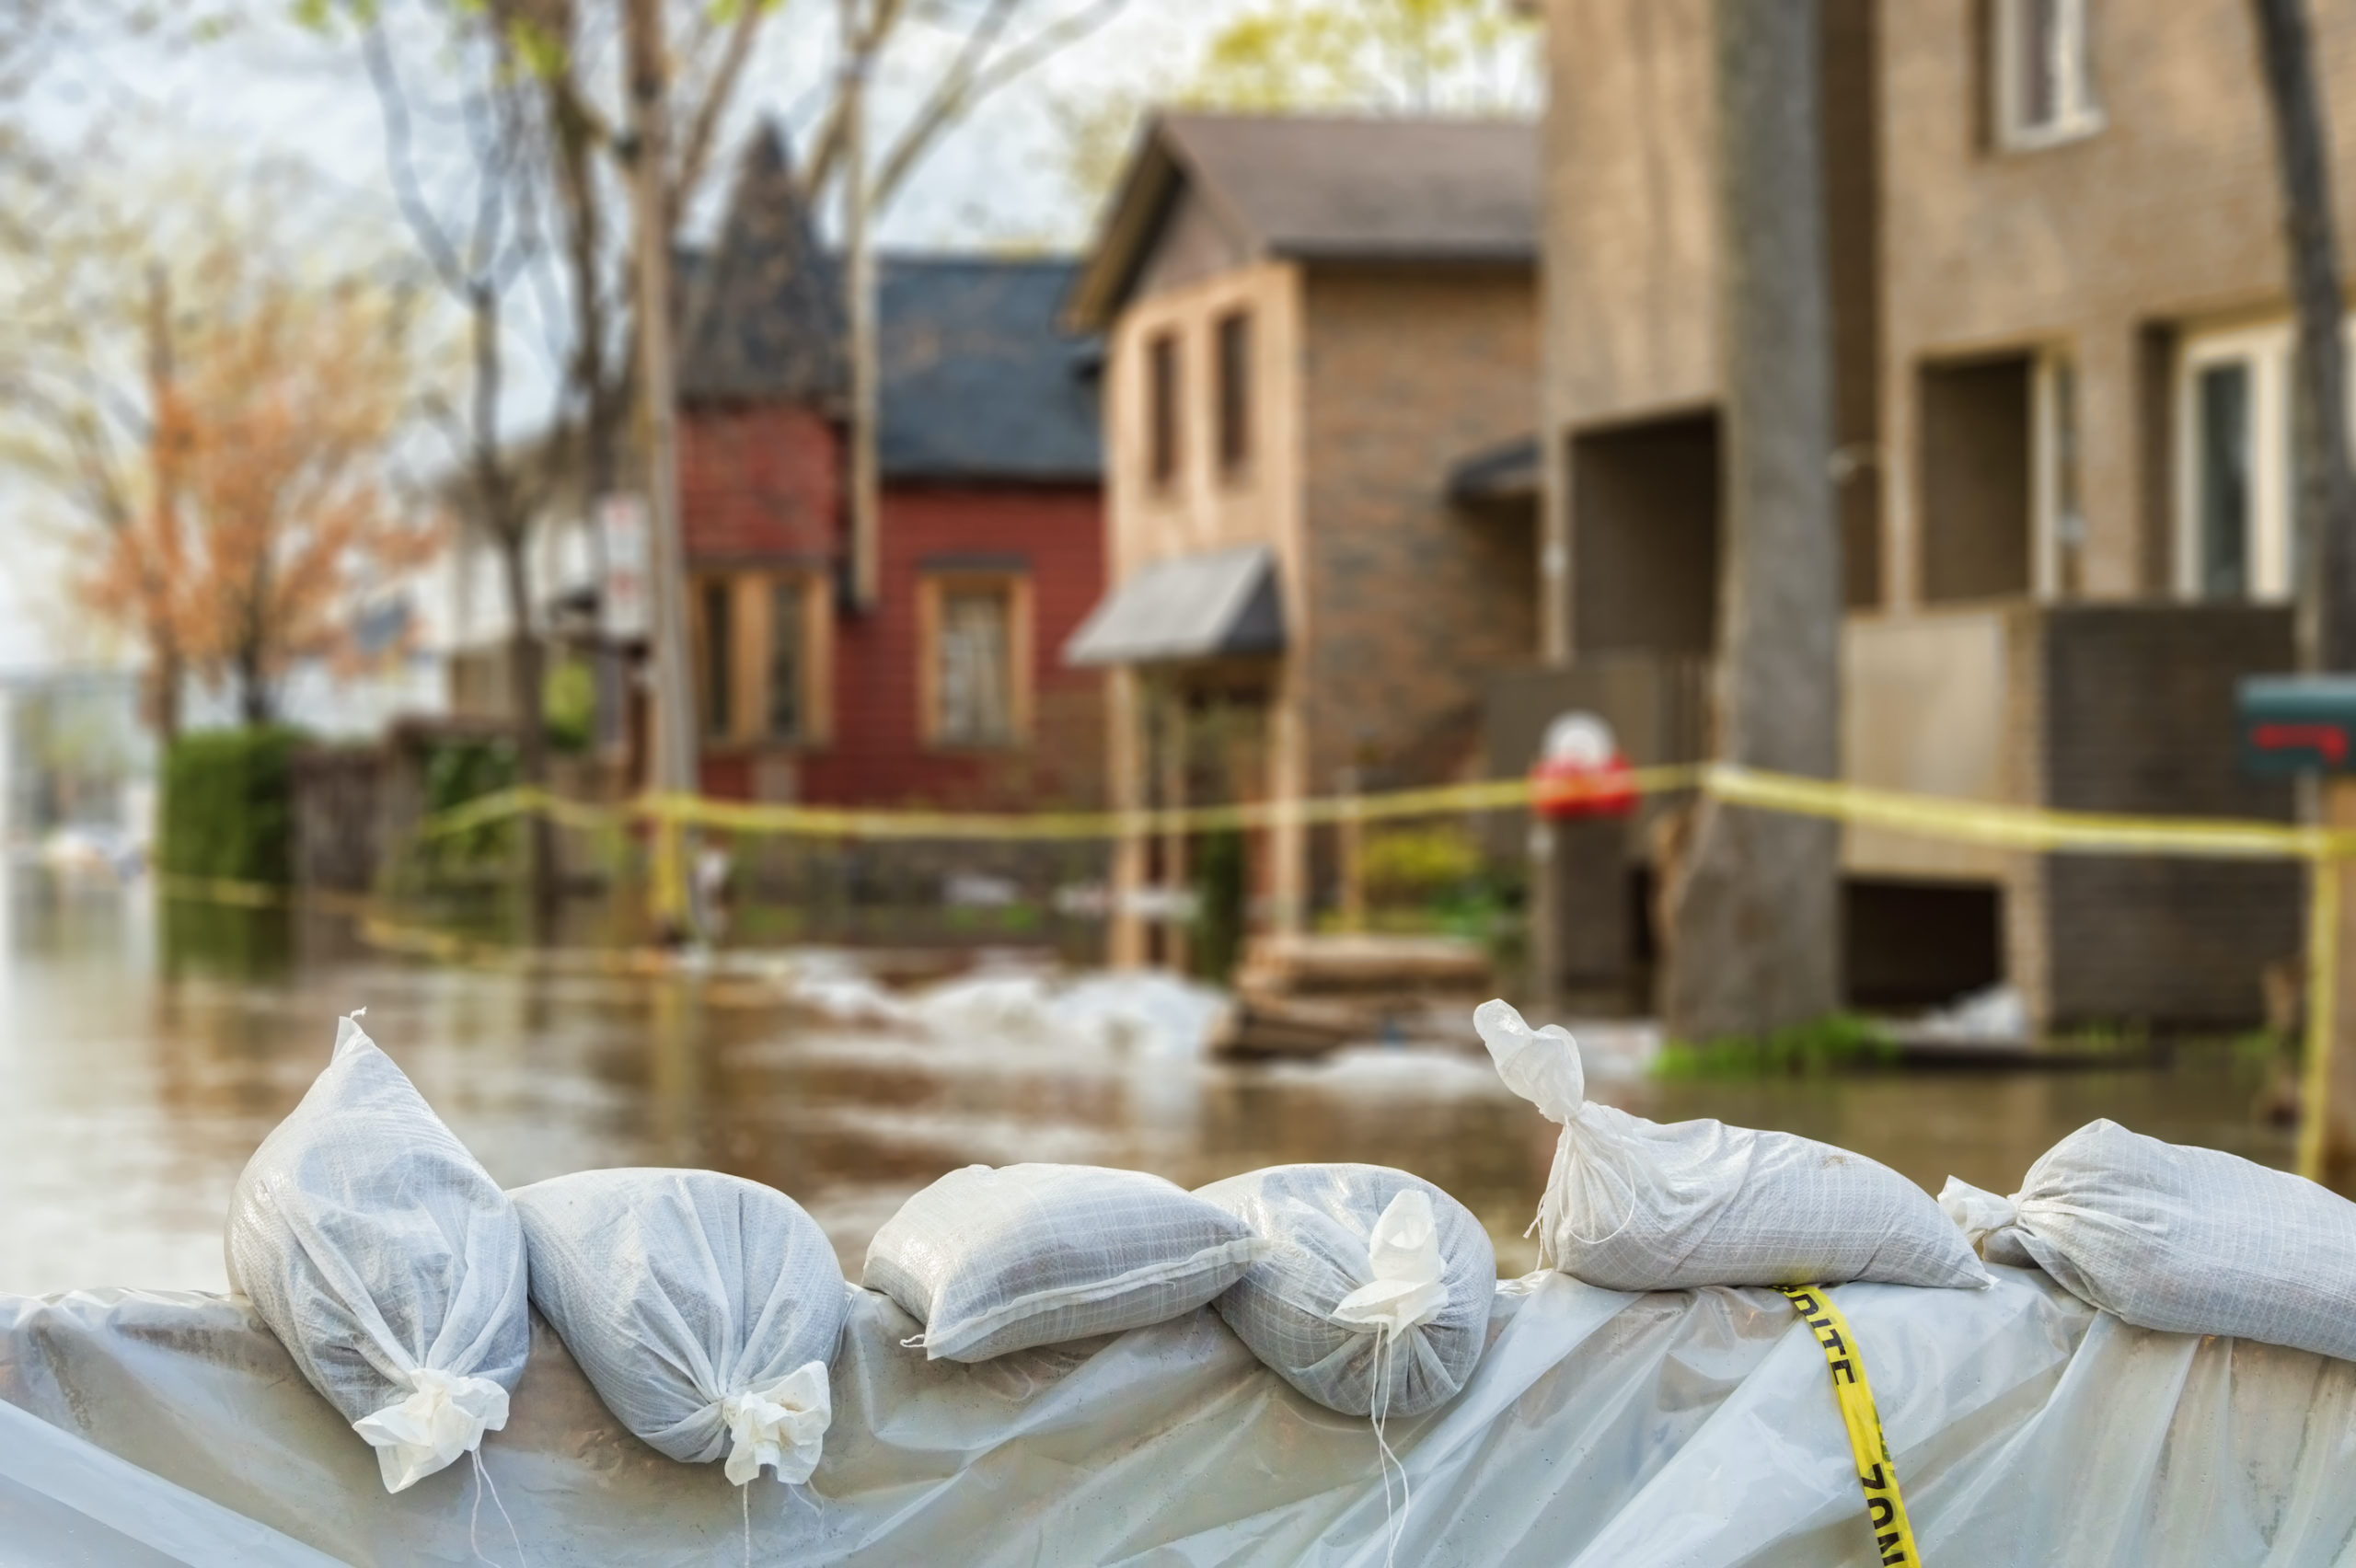 FHA Proposes Allowing Private Flood Insurance